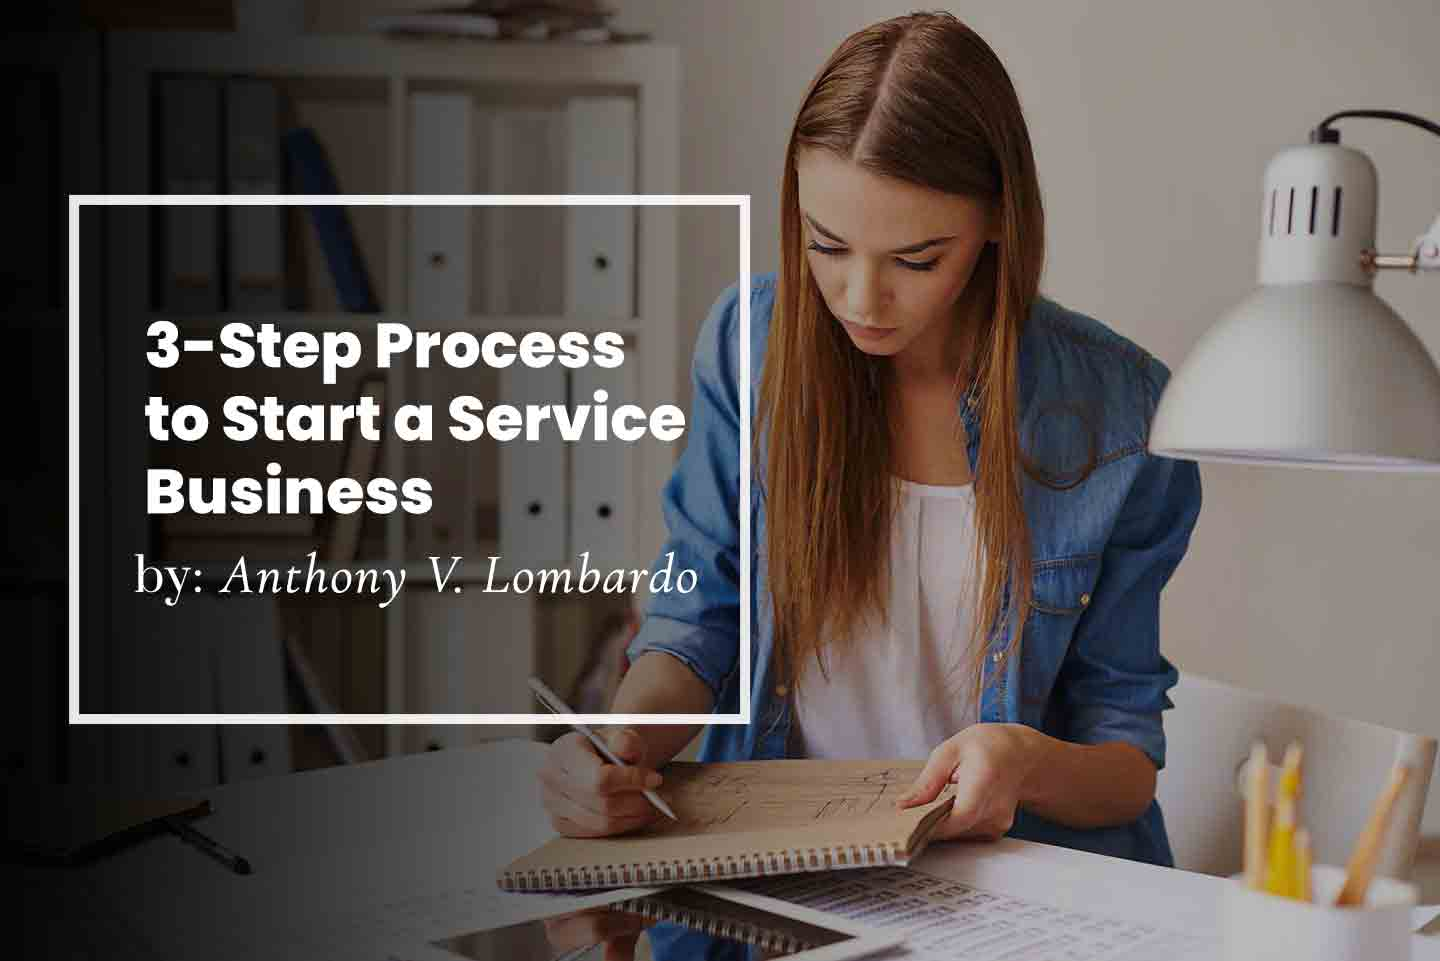 3-Step Process to Start a Service Business